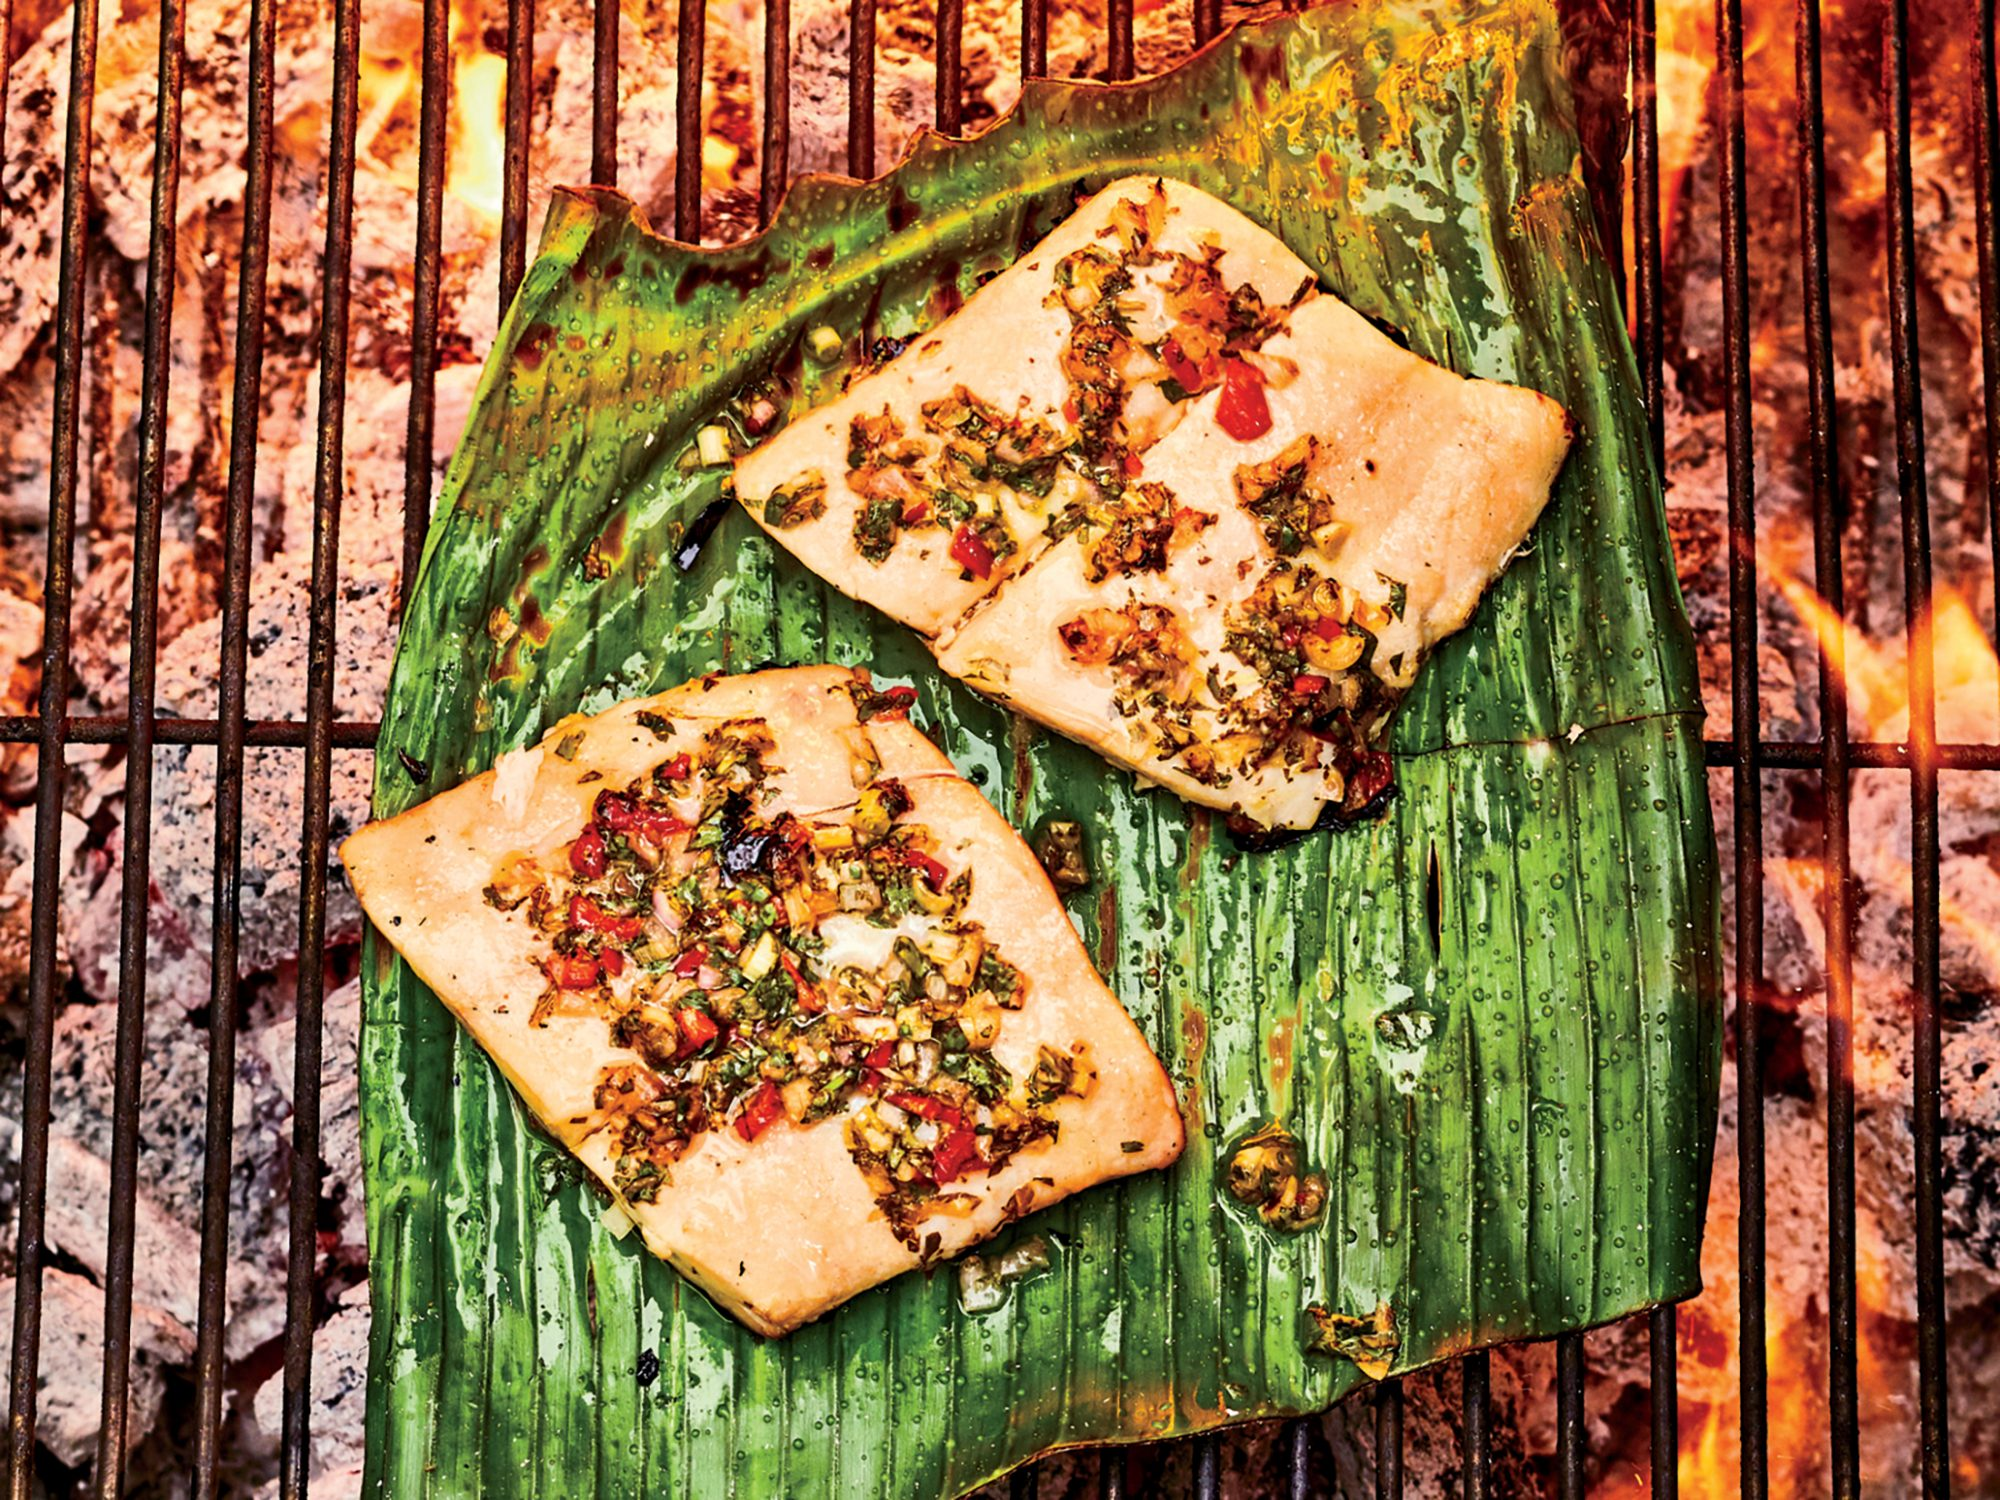 Flounder Grilled on Banana Leaves